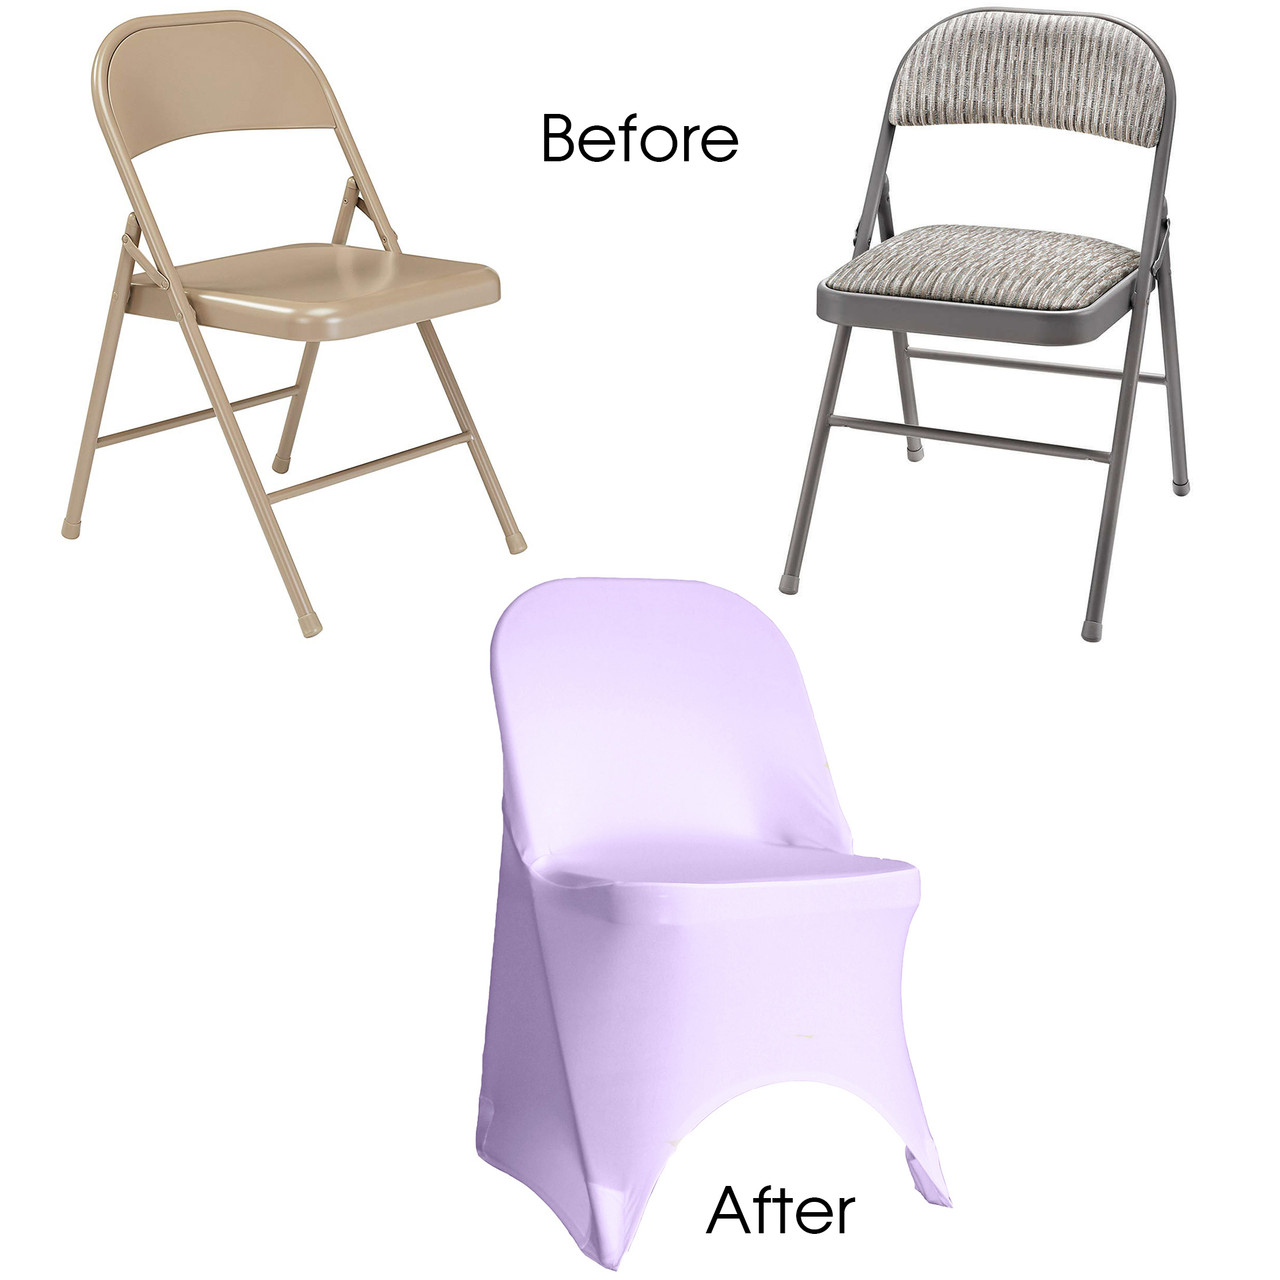 Wondrous Stretch Spandex Folding Chair Cover Lavender Gmtry Best Dining Table And Chair Ideas Images Gmtryco